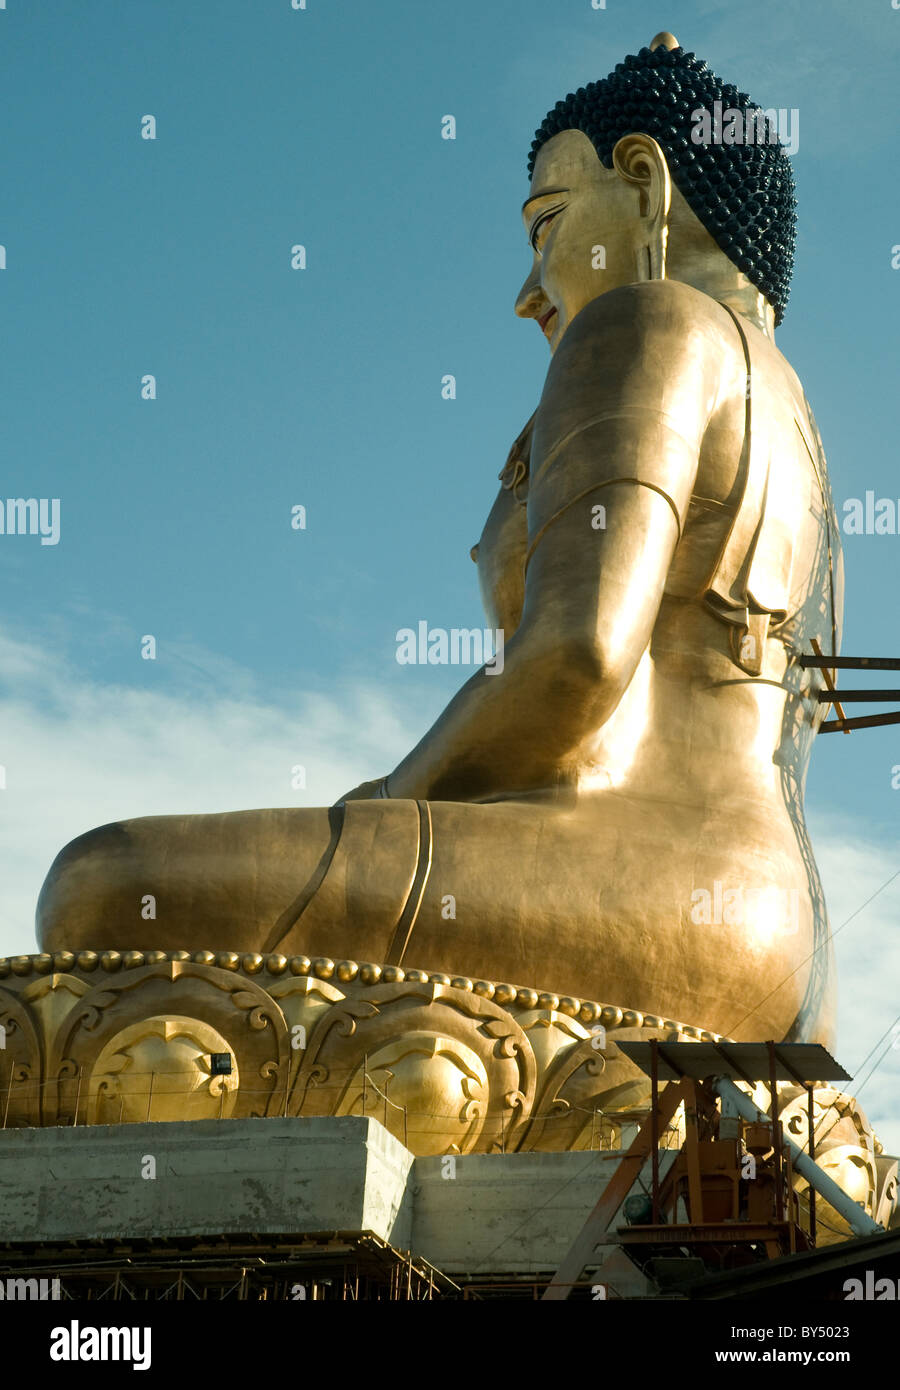 On a hill outside Bhutan's capital, Thimpu, a 162-foot-high Buddha is a gleaming feature of the landscape - Stock Image